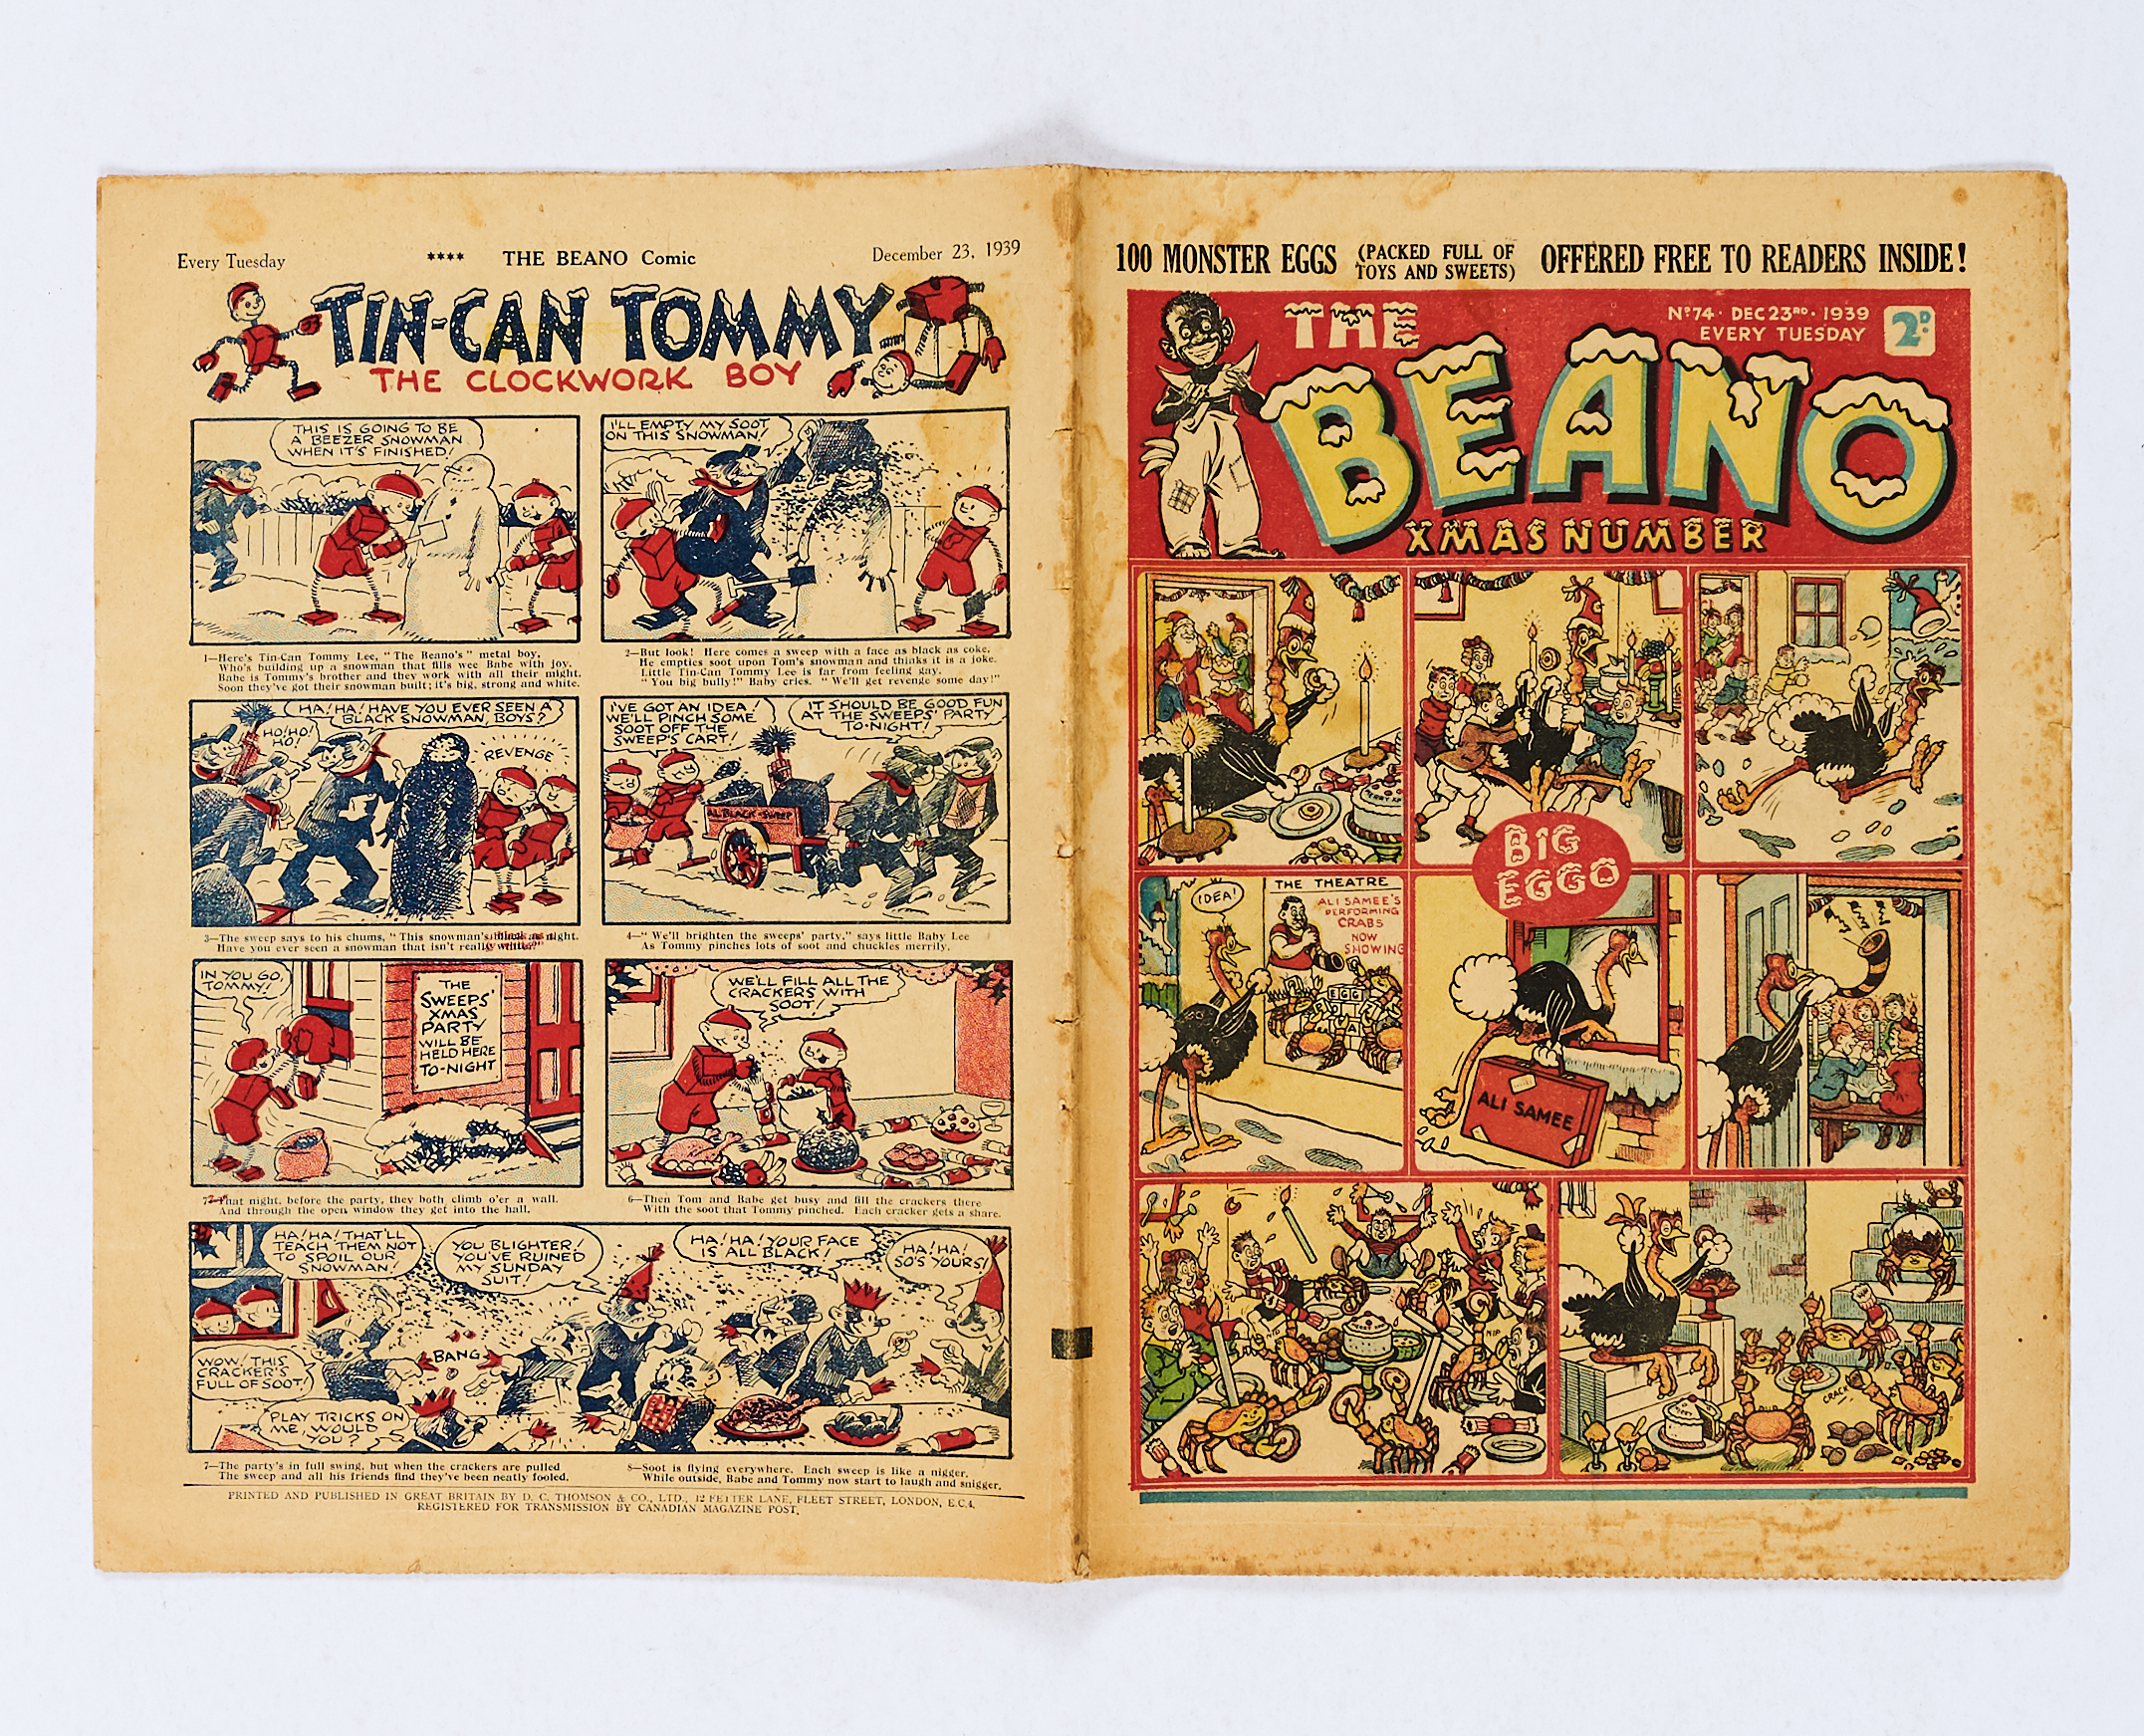 Lot 25 - Beano 74 (1939). Propaganda Xmas Number. Wild Boy of the Woods steals Nazi Christmas dinner, Daddy